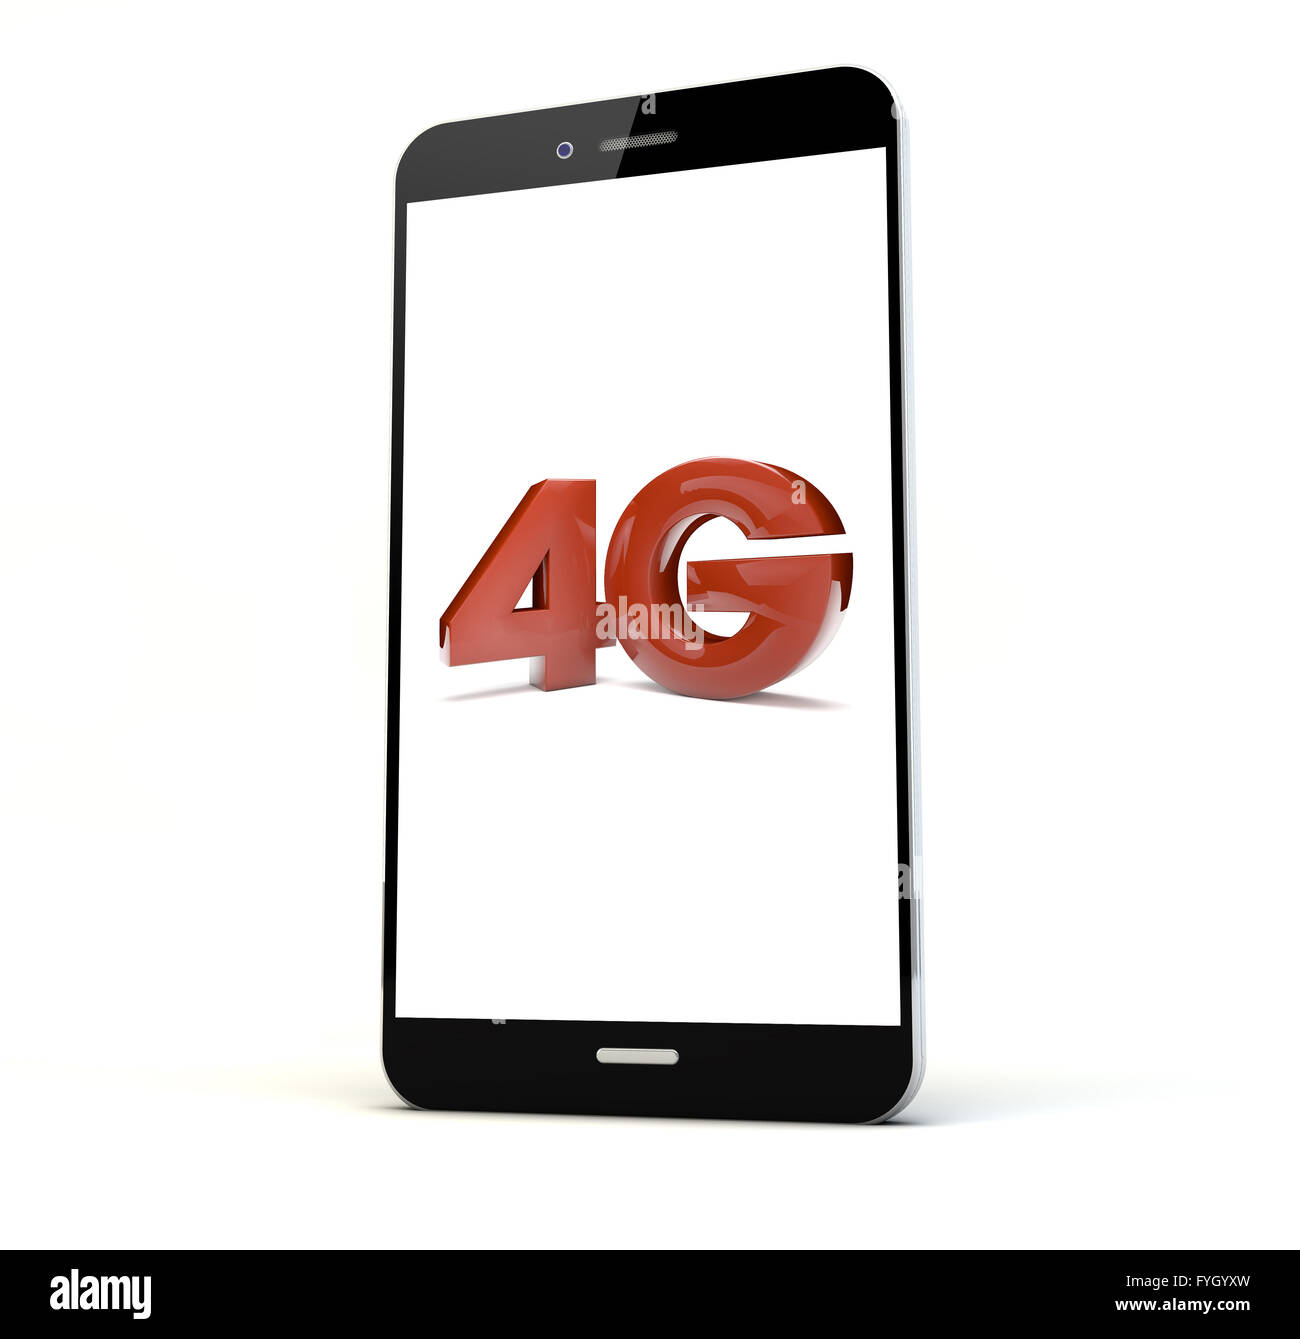 render of a phone with 4g on the screen isolated. Screen graphics are made up. - Stock Image